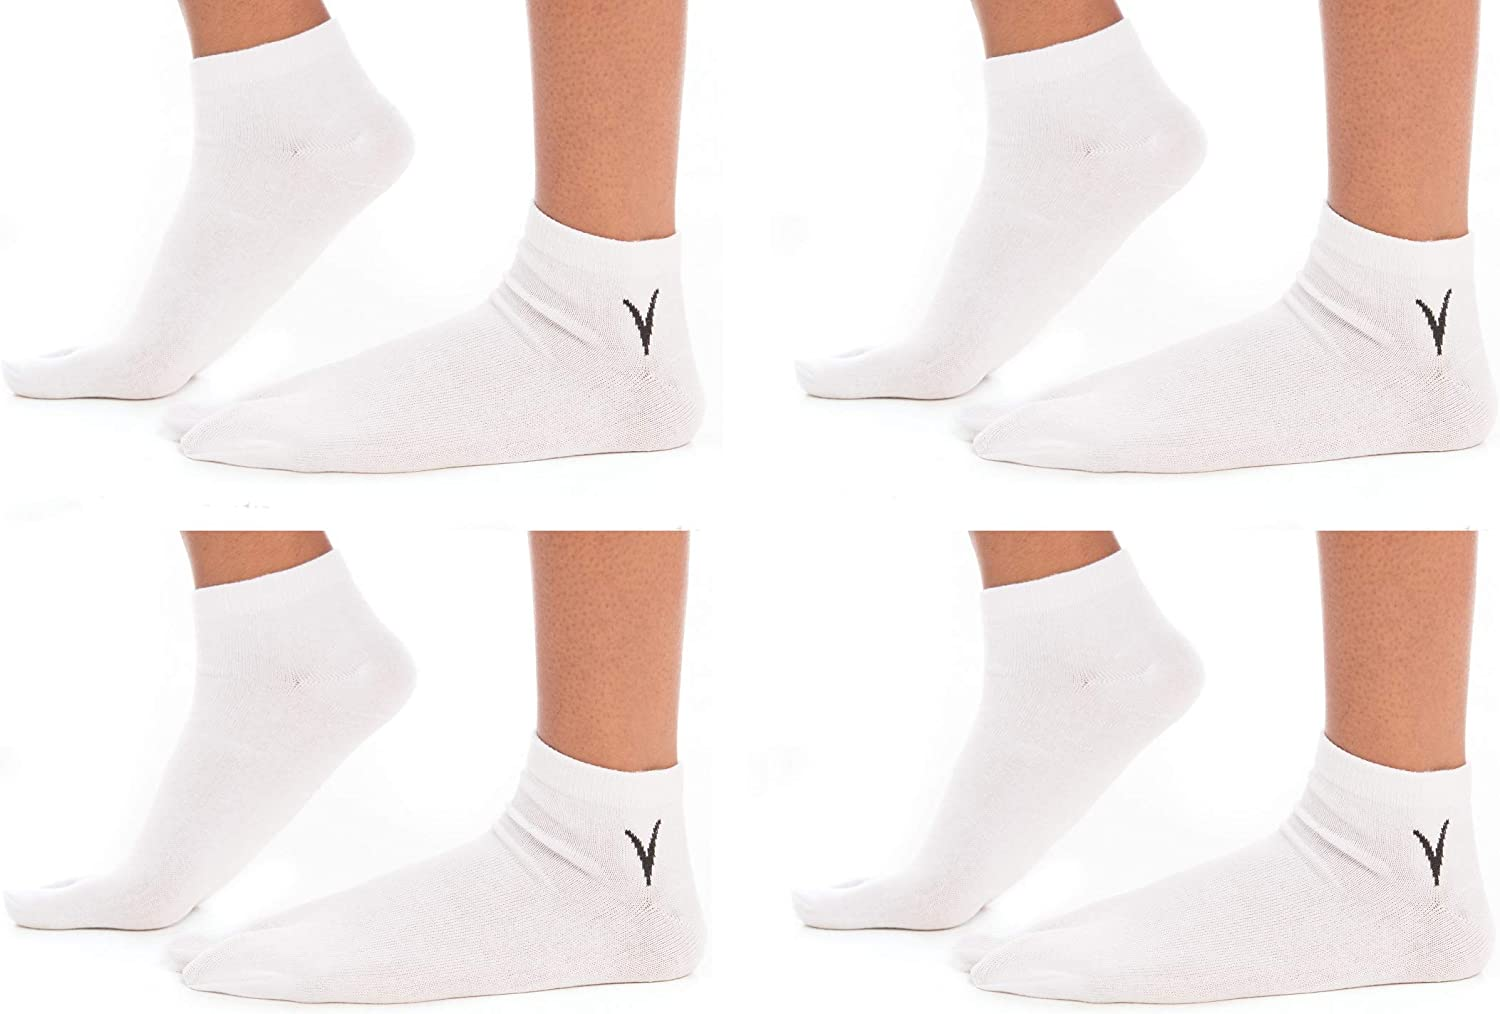 4 Pairs Ankle V-Toe Flip-Flop Cotton Blend Big Toe Style Tabi Socks Fun Casual